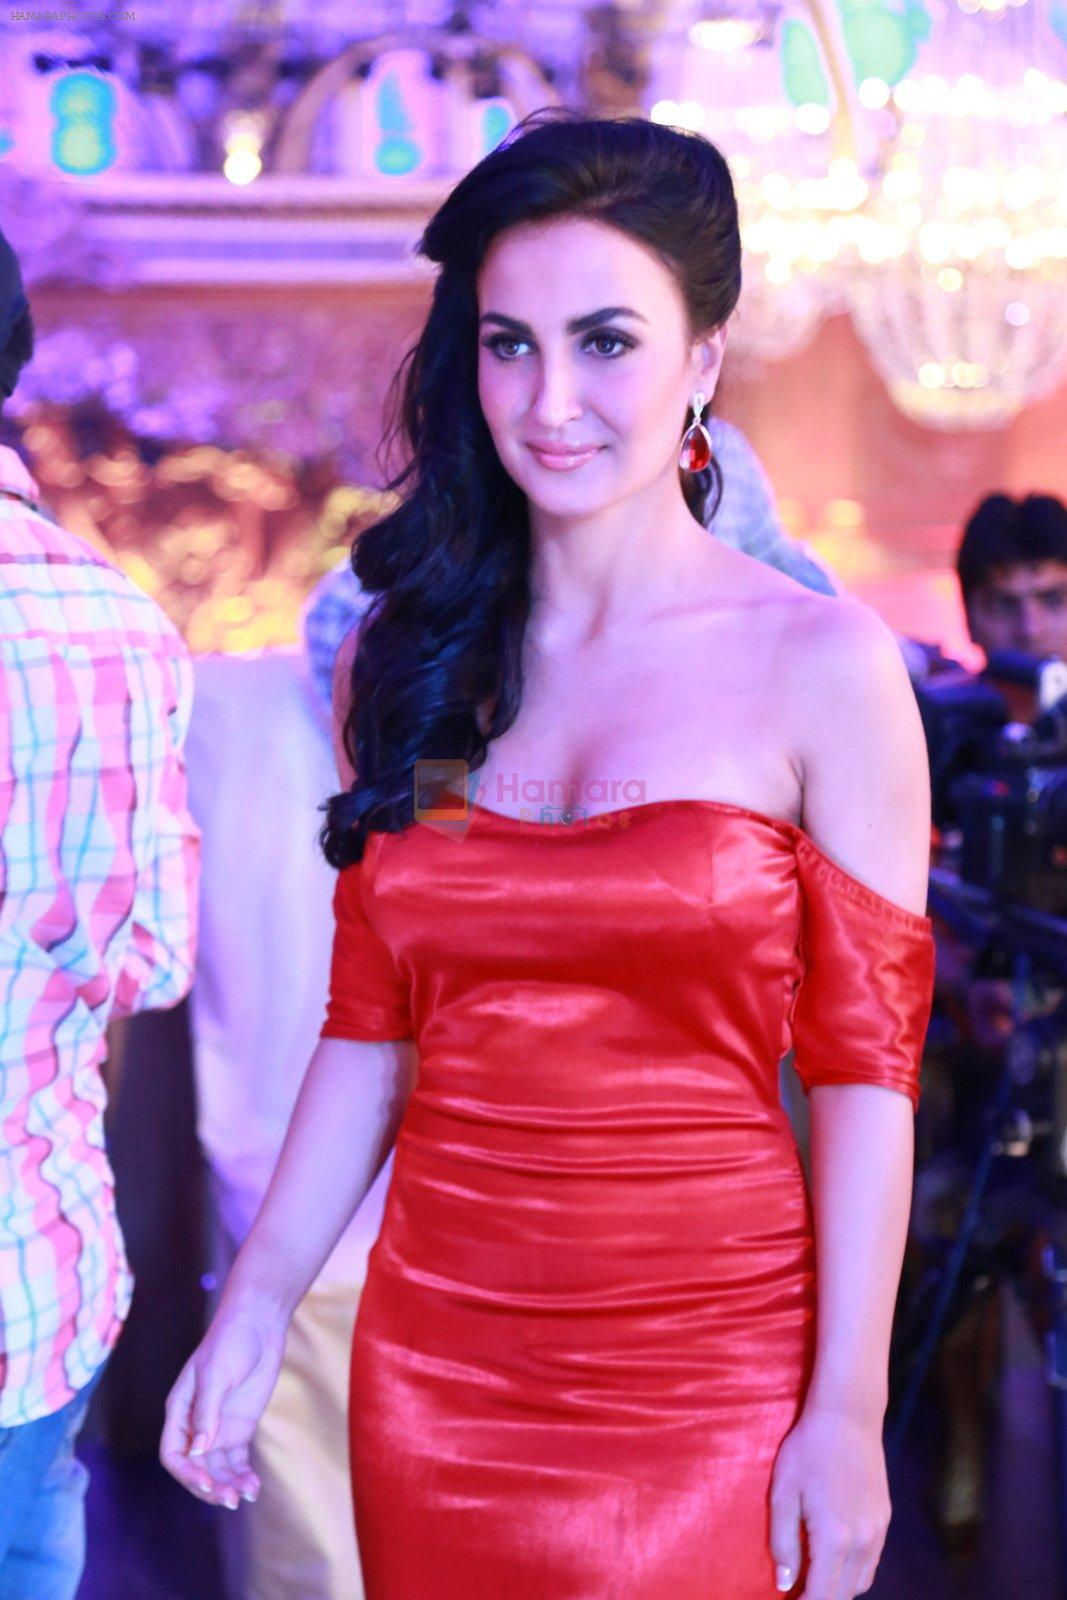 Elli avram in an Upcoming Track Urban Chhori on 30th Nov 2016